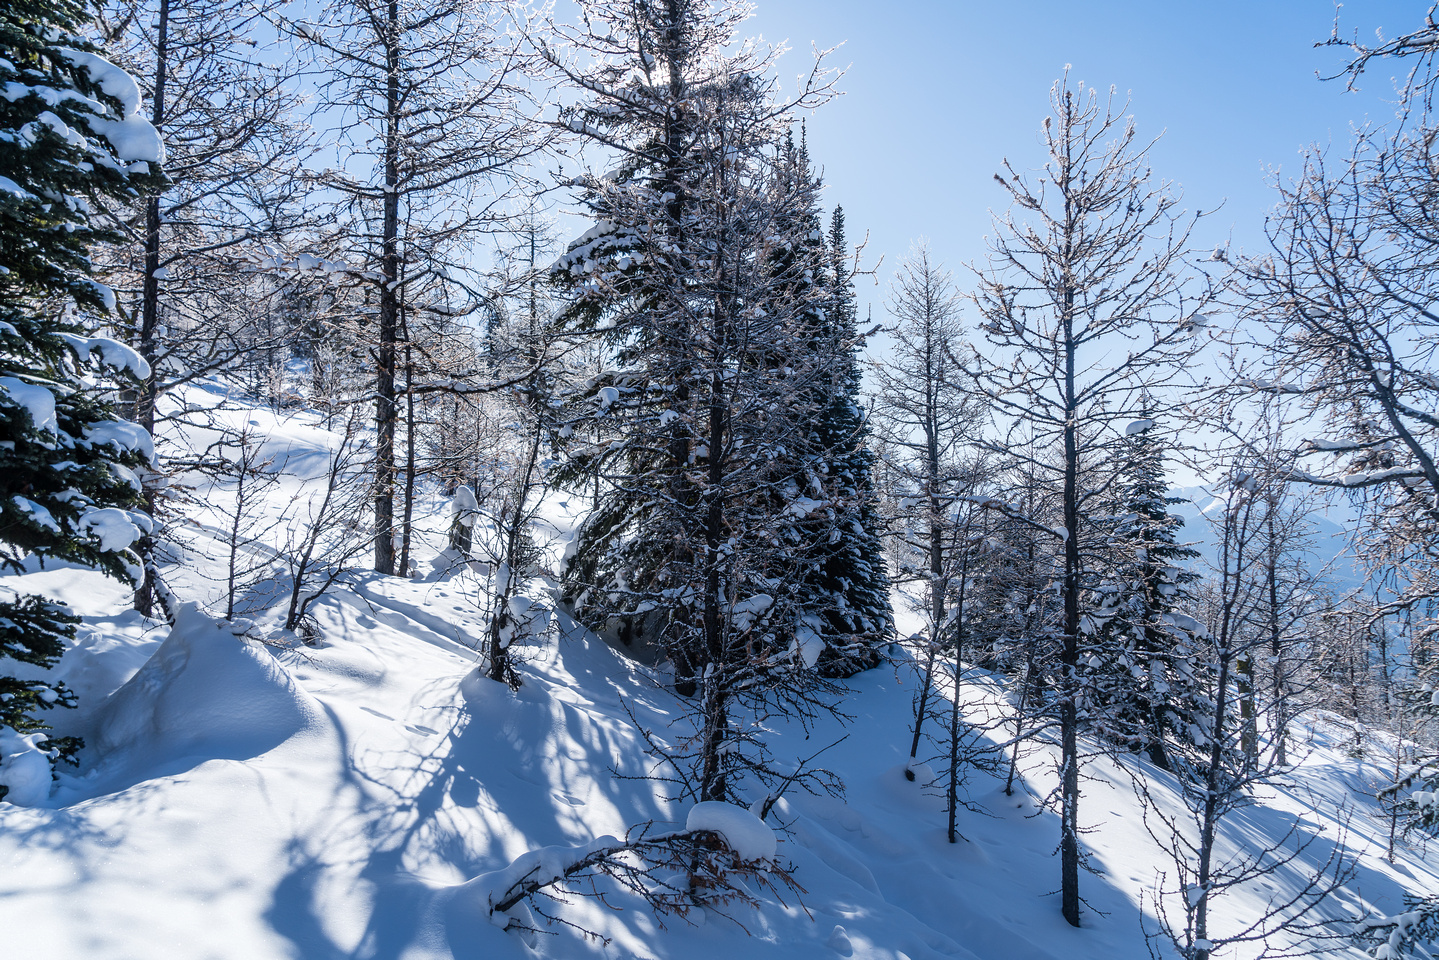 A gorgeous morning as I approach larch forests near treeline on the ridge. It's still -20 though!